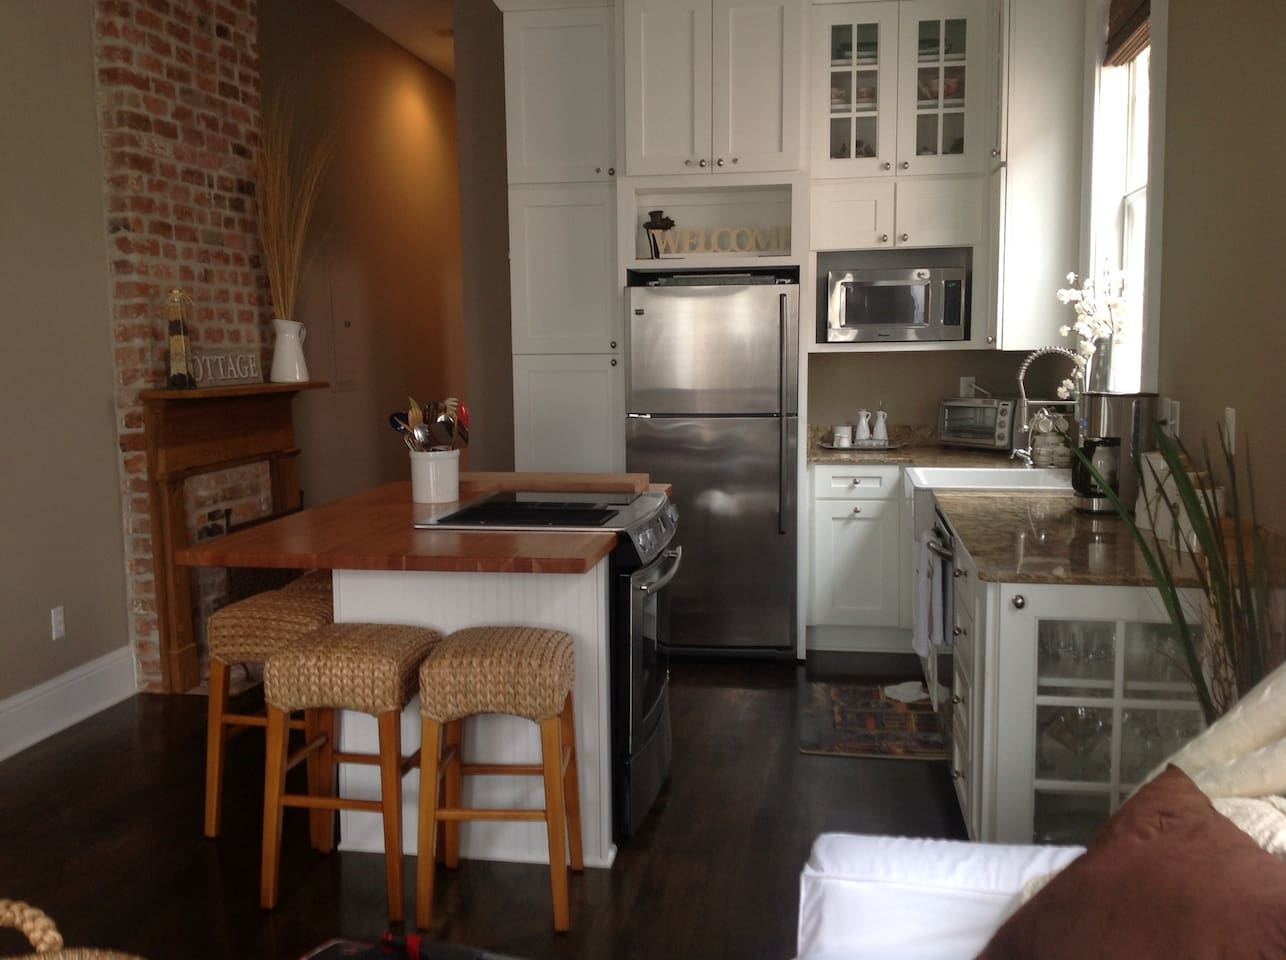 completely remodeled kitchen, great island with breakfast bar